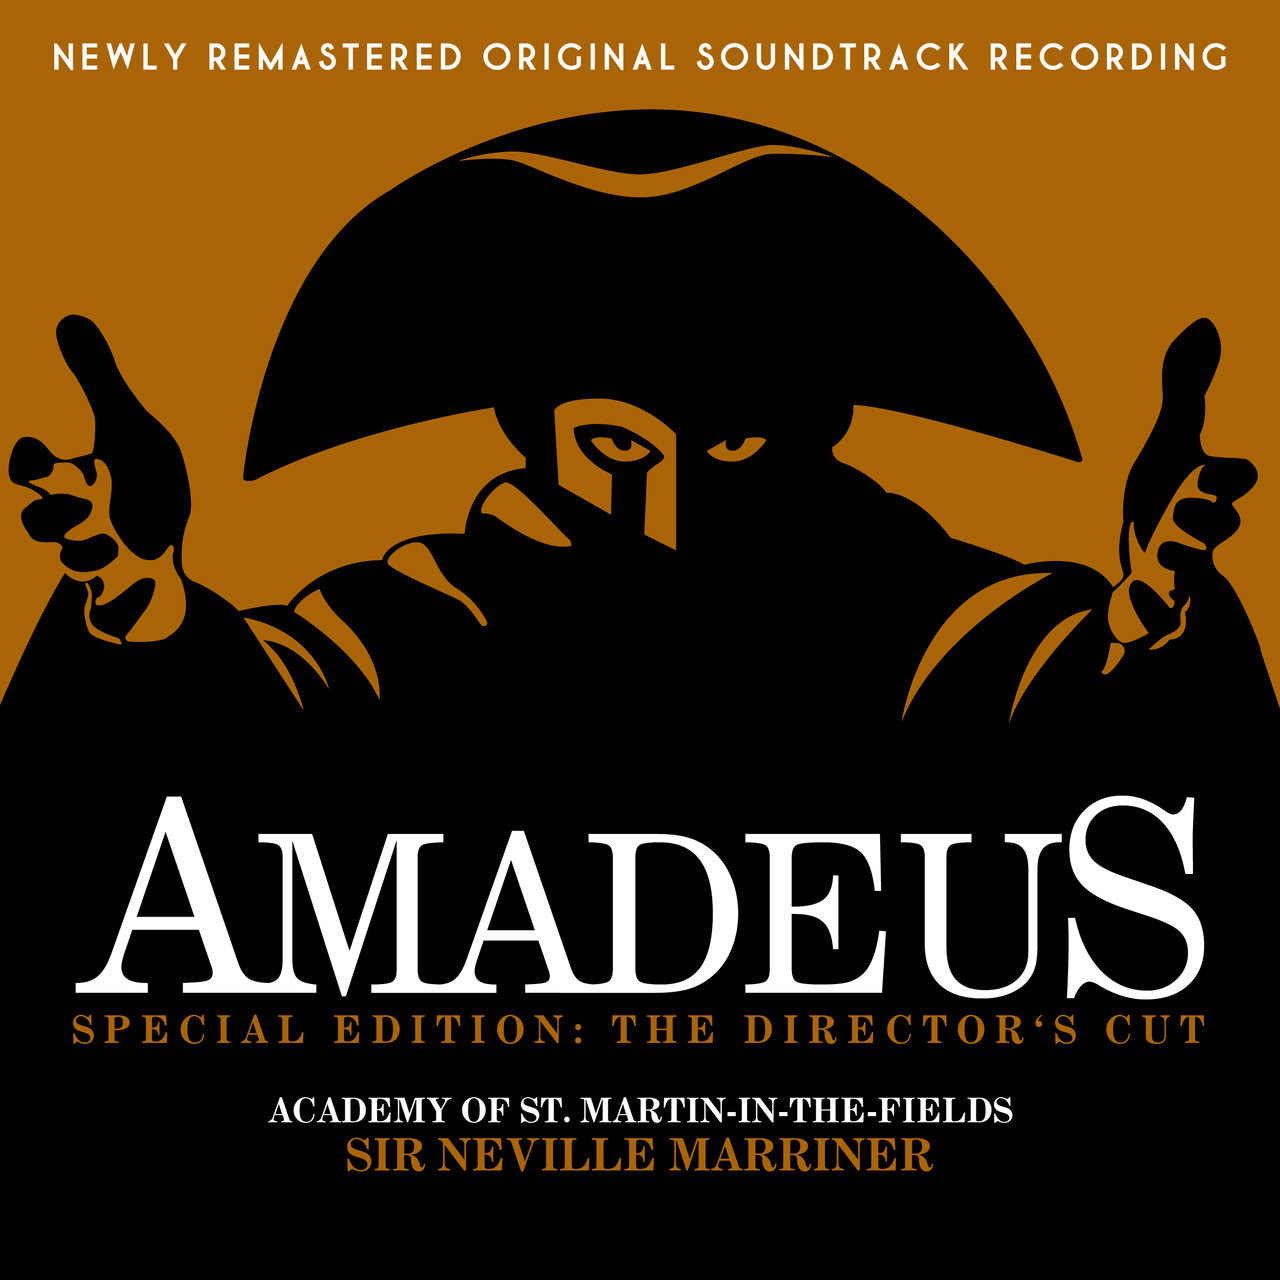 amadeus_collector__s_edition_soundtrack_by_puschelpink-d57axic